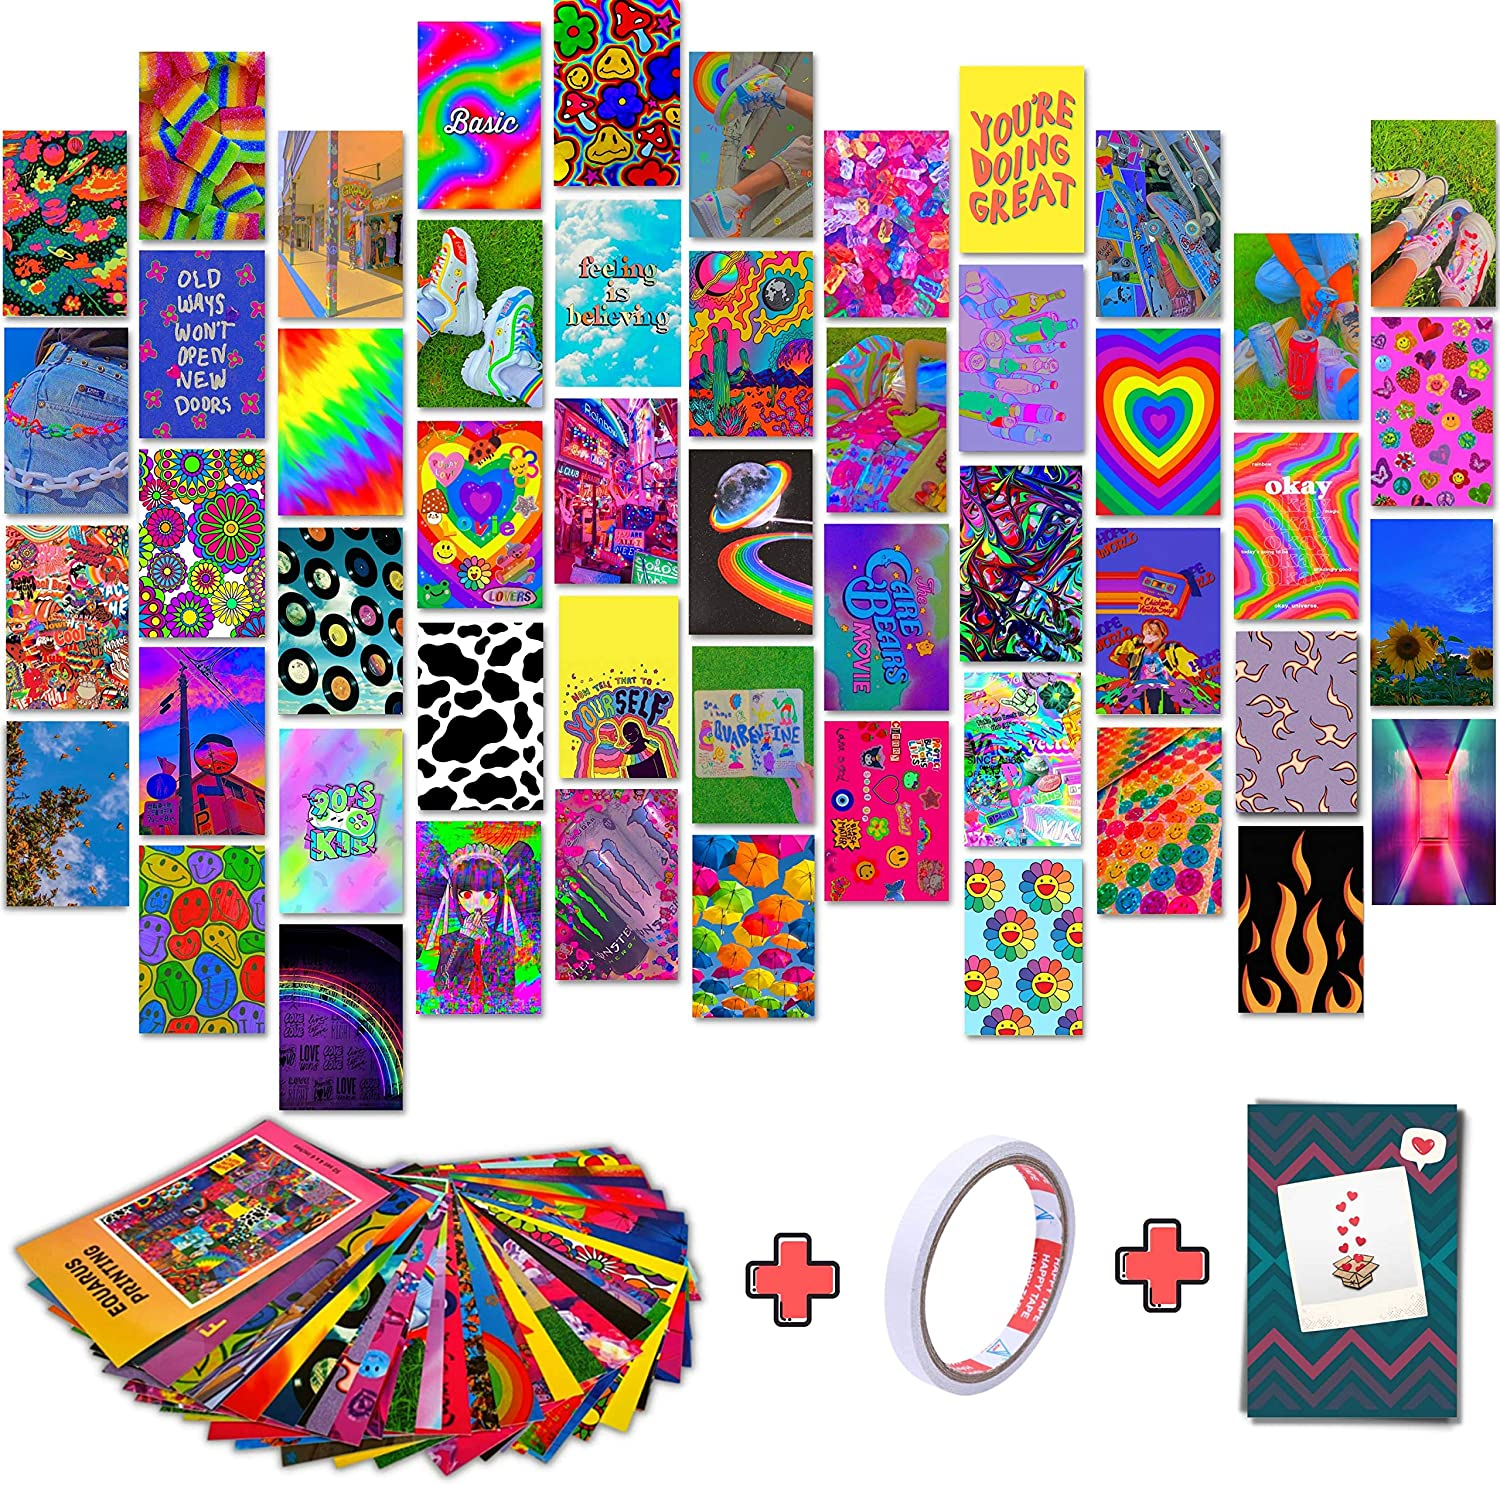 Wall Decor for Bedroom Aesthetic Decor, 50pcs Pictures Aesthetic Wall Collage Kit for Indie Room Decor, Indie Posters for Kidcore Room Decor, 4x6 Photo Wall Collage Kit for Indie Wall Decor